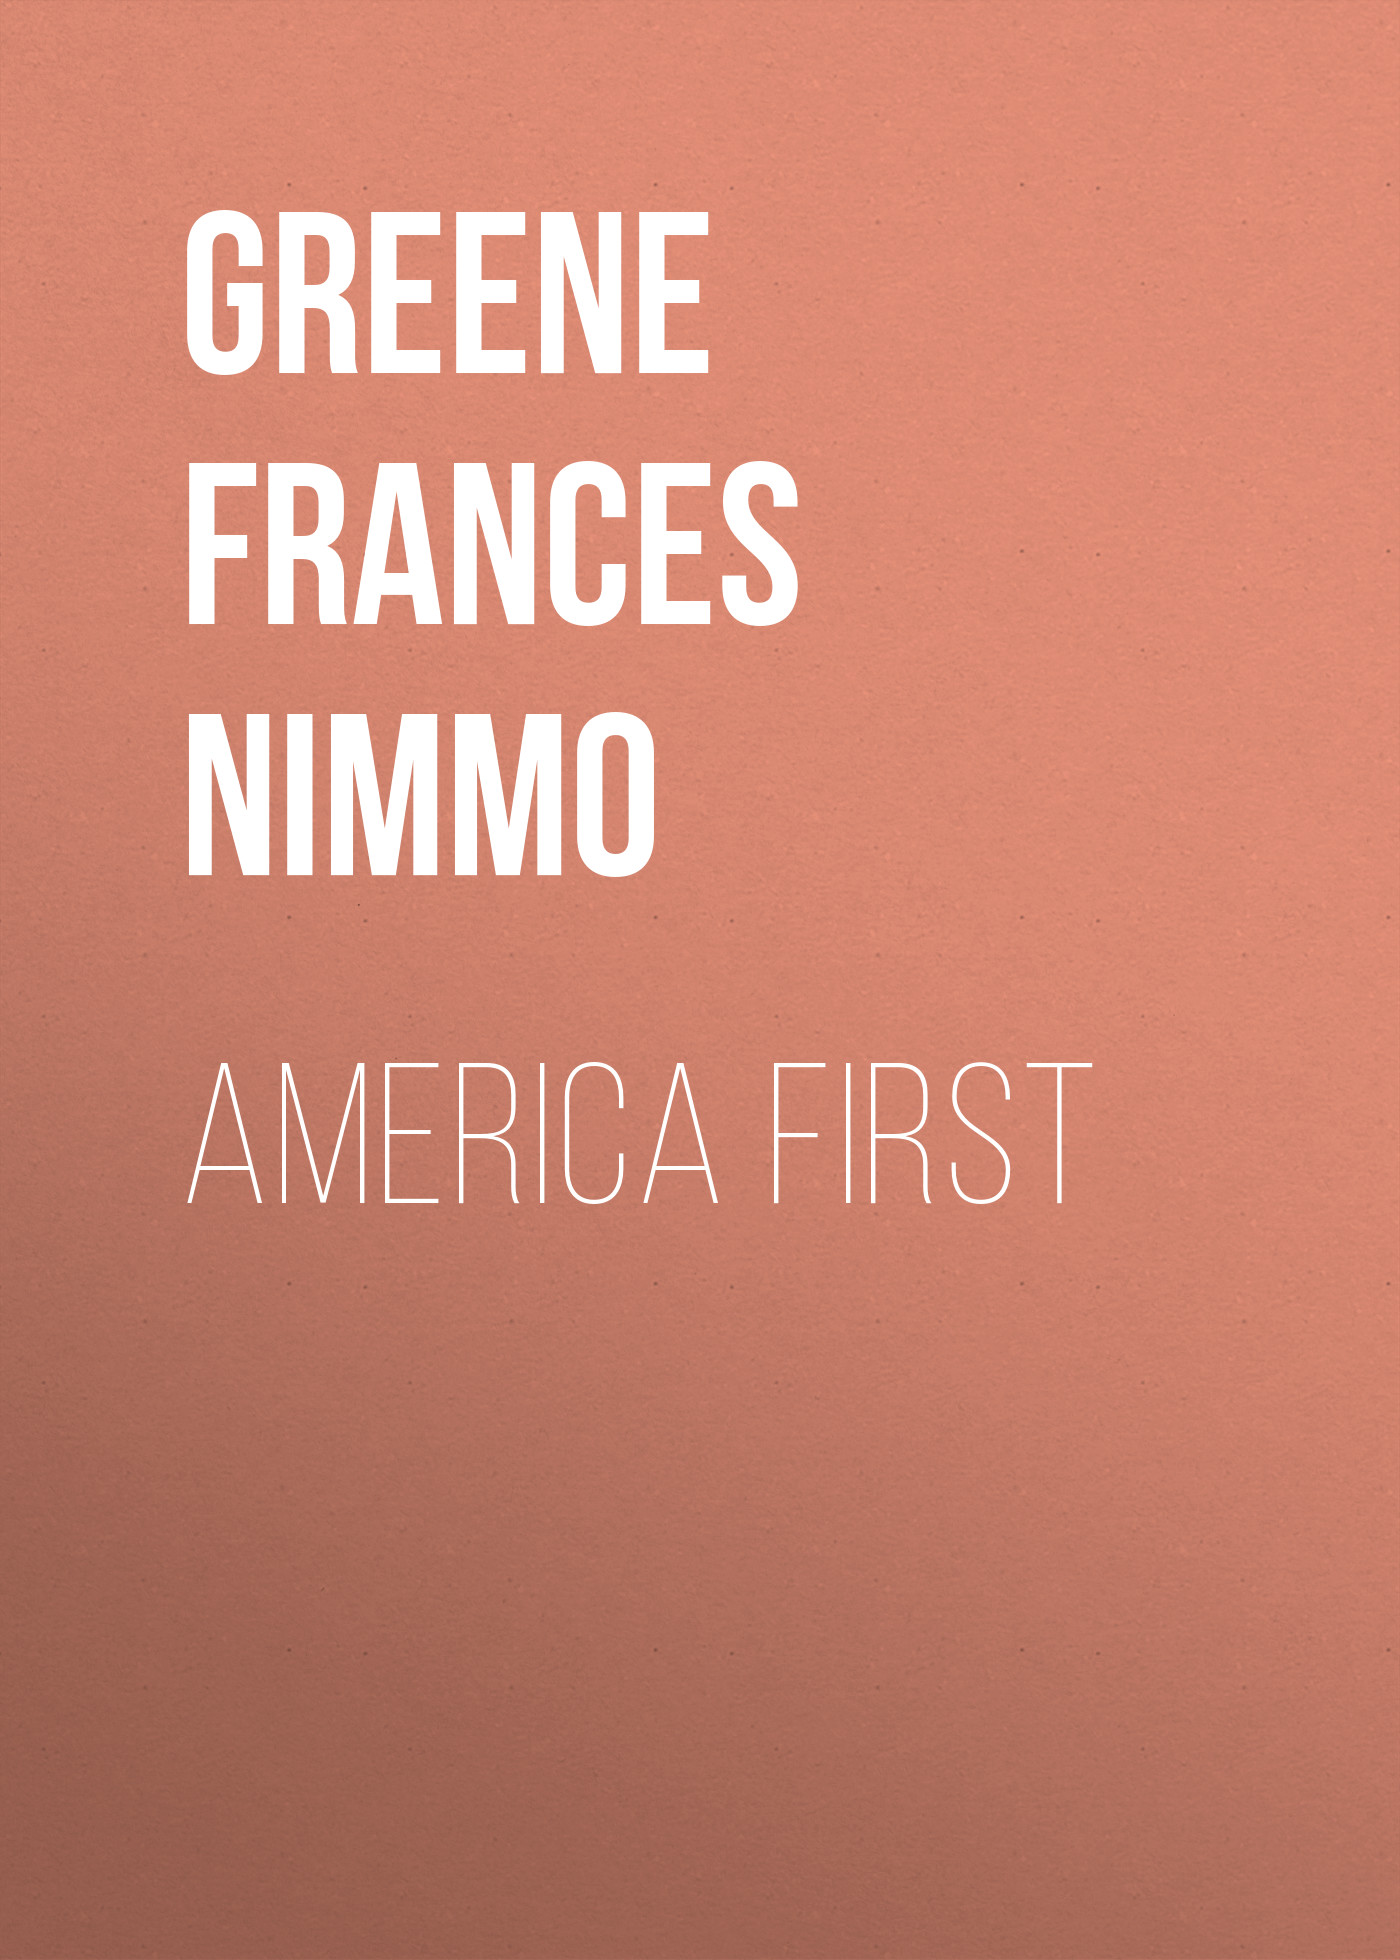 Greene Frances Nimmo America First gong show 2018 04 01t18 00